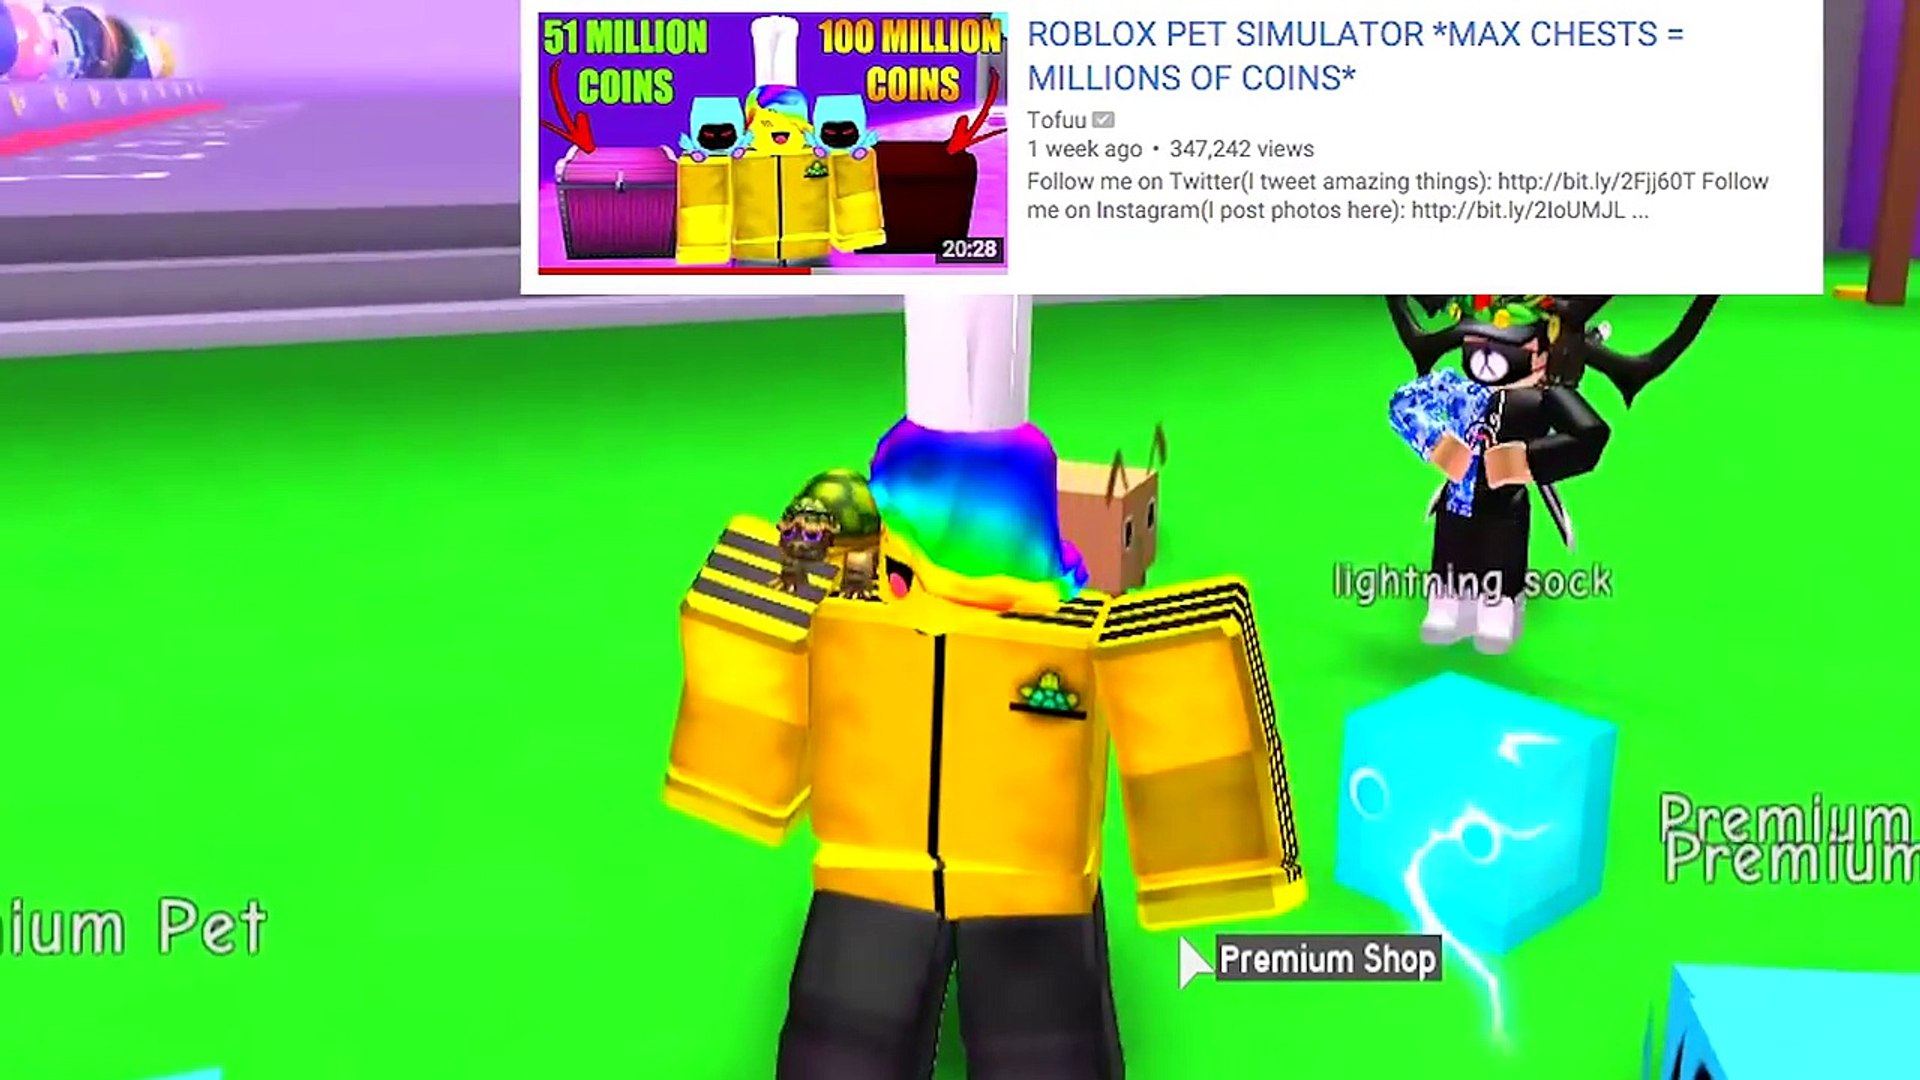 Roblox Pet Simulator Videos I Gave Her The Golden Dominus Pet And She Screamed Roblox Pet Simulator Dailymotion Video